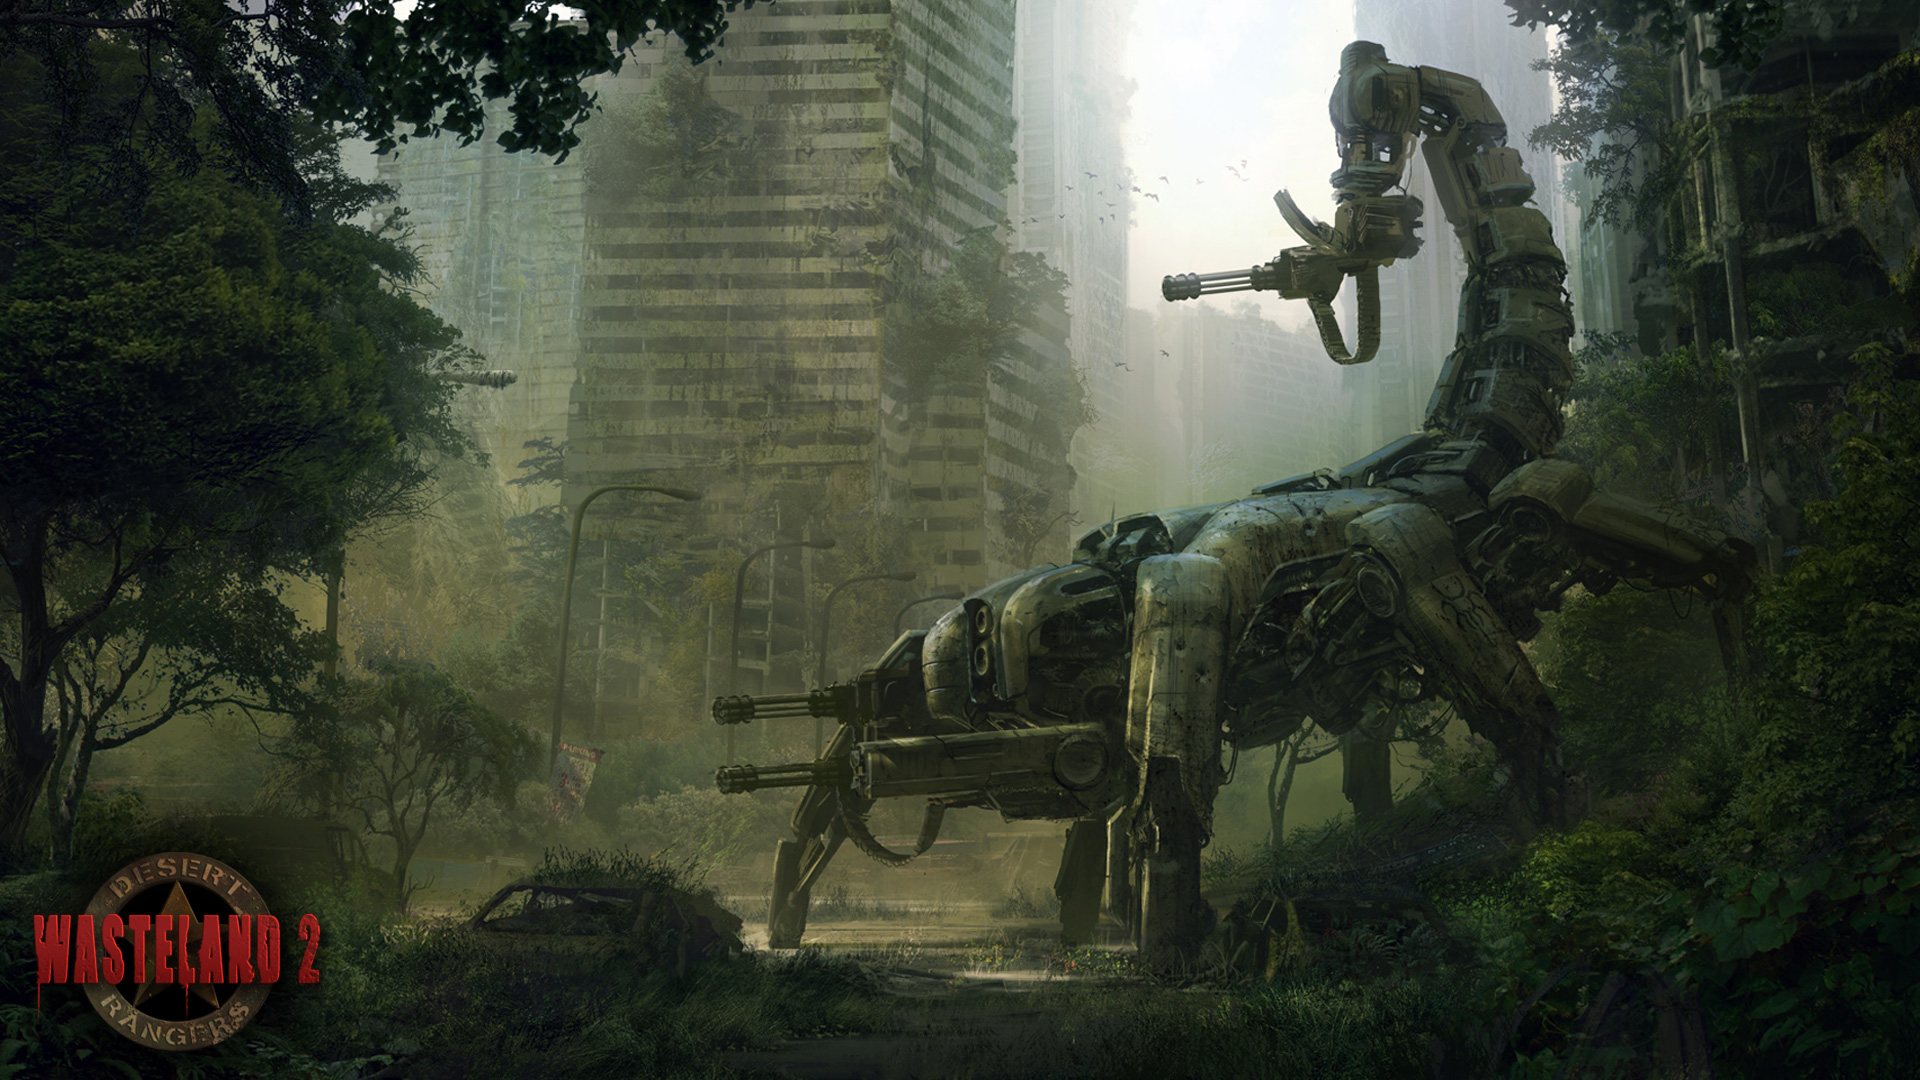 Al fin tenemos video gameplay de Wasteland 2 [Video]